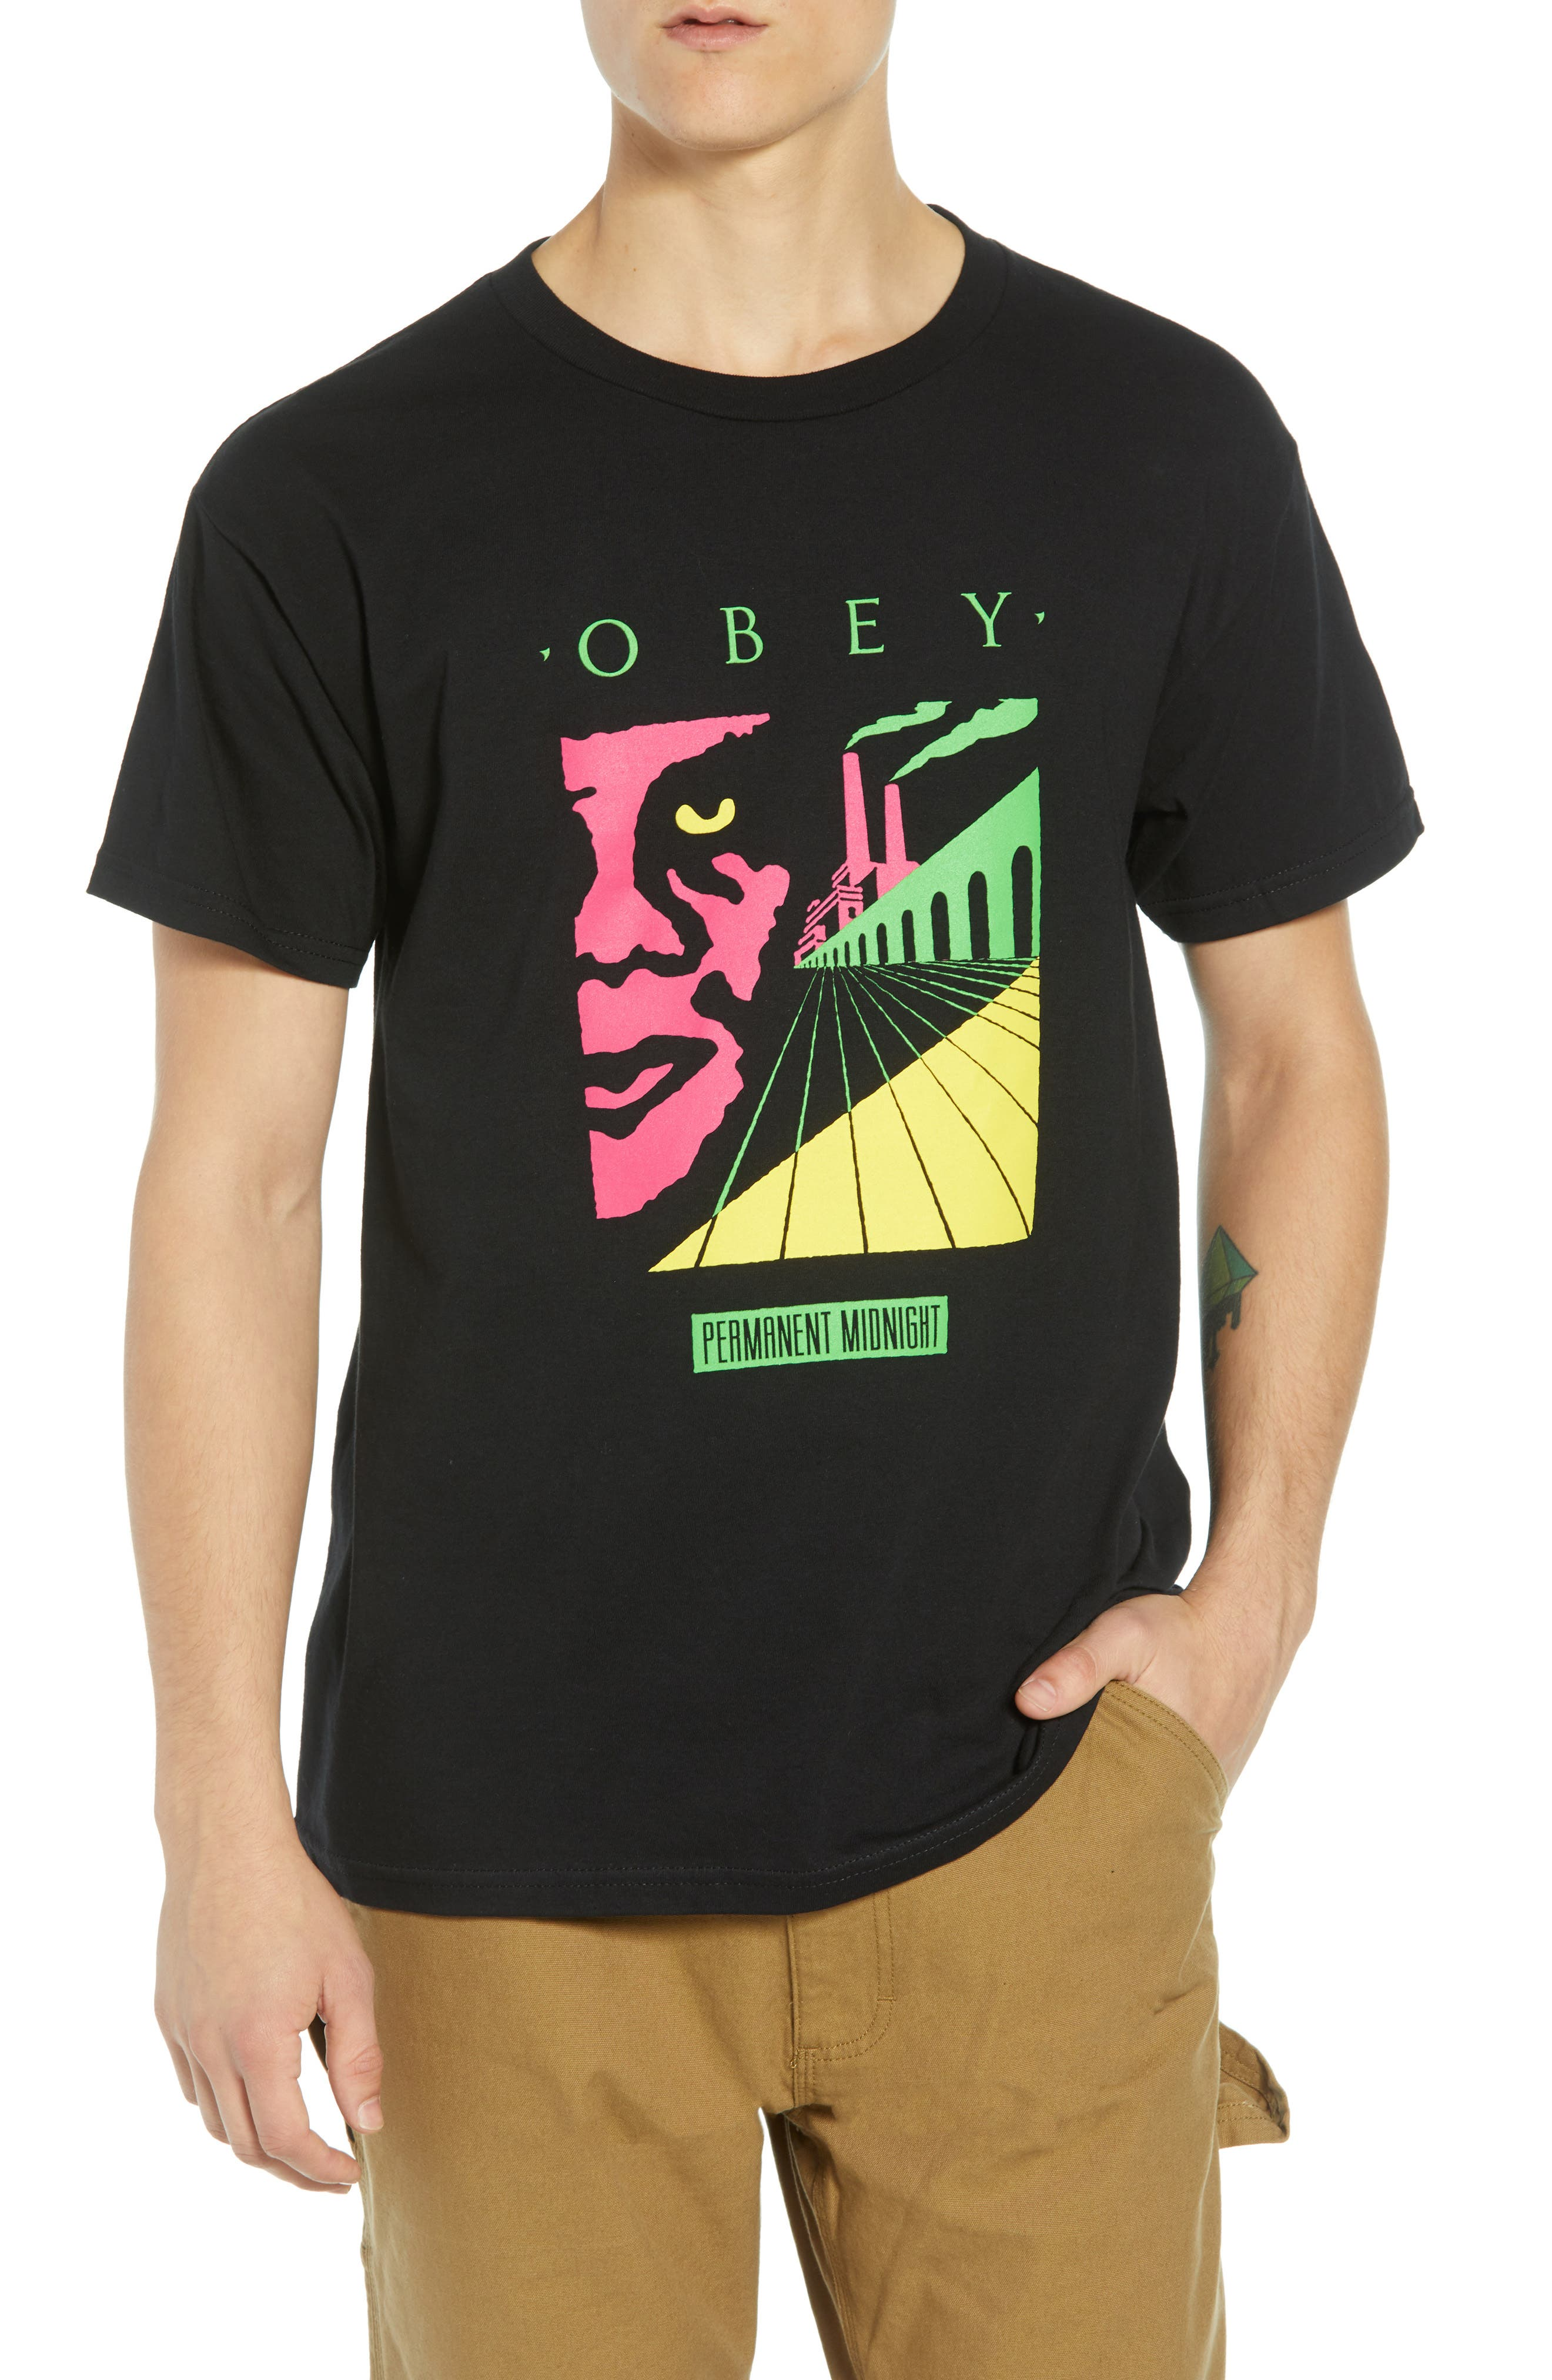 OBEY Permanent Midnight Premium T-Shirt, Main, color, 001